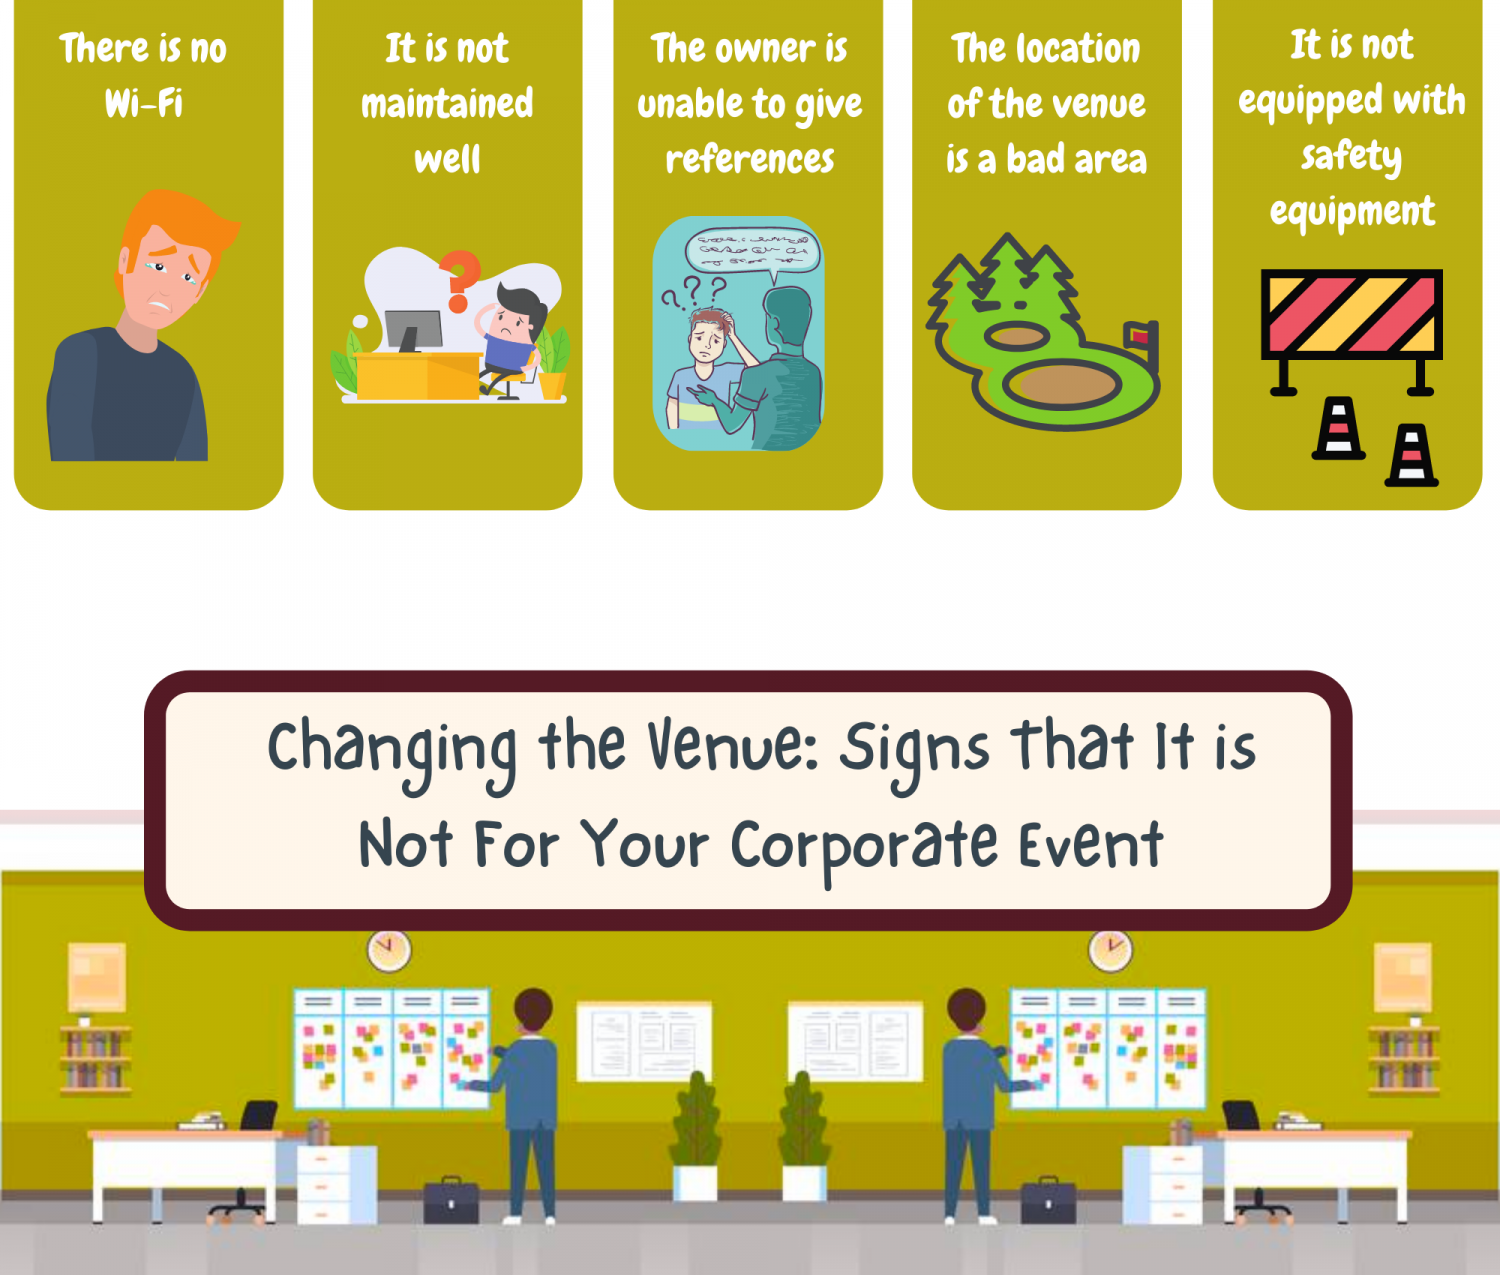 Changing the Venue: Signs That It is Not For Your Corporate Event Infographic